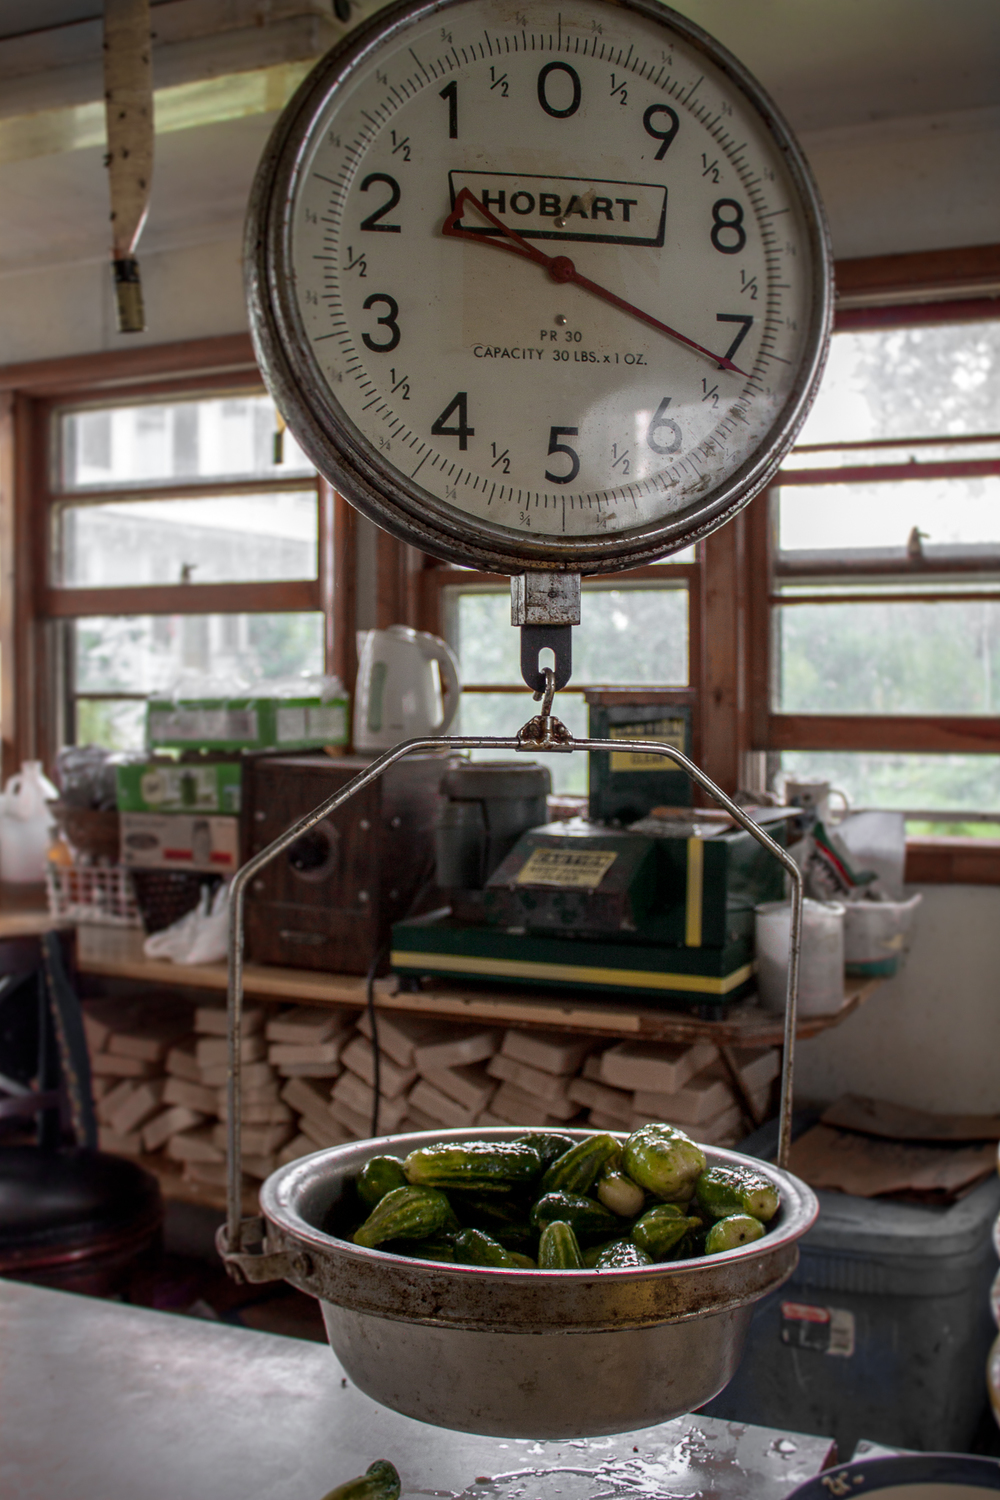 Weighing cucumbers